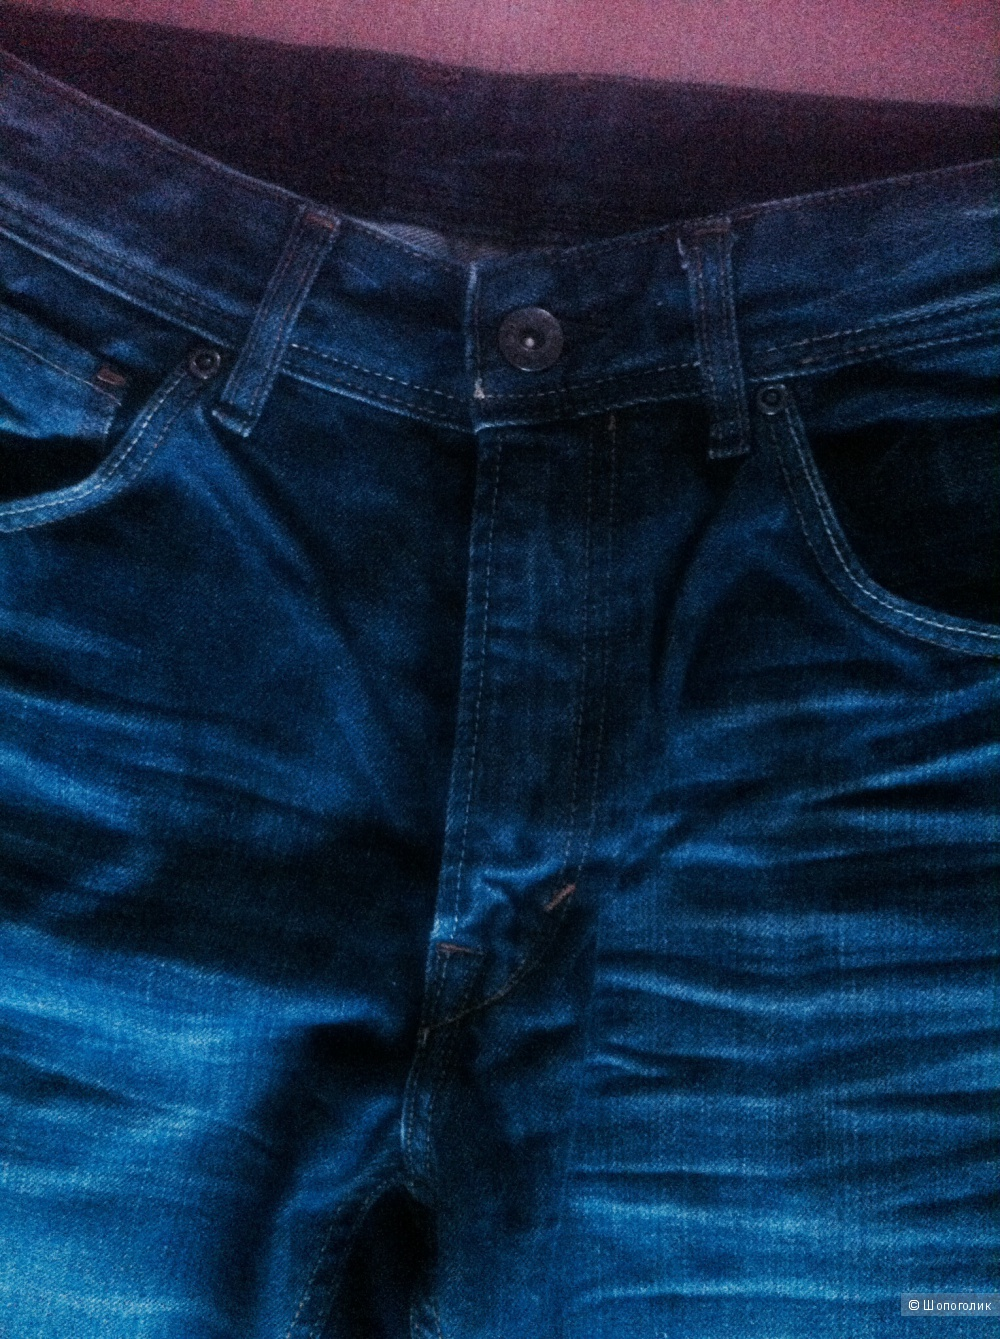 Джинсы H&M &Denim, 42-44 размер